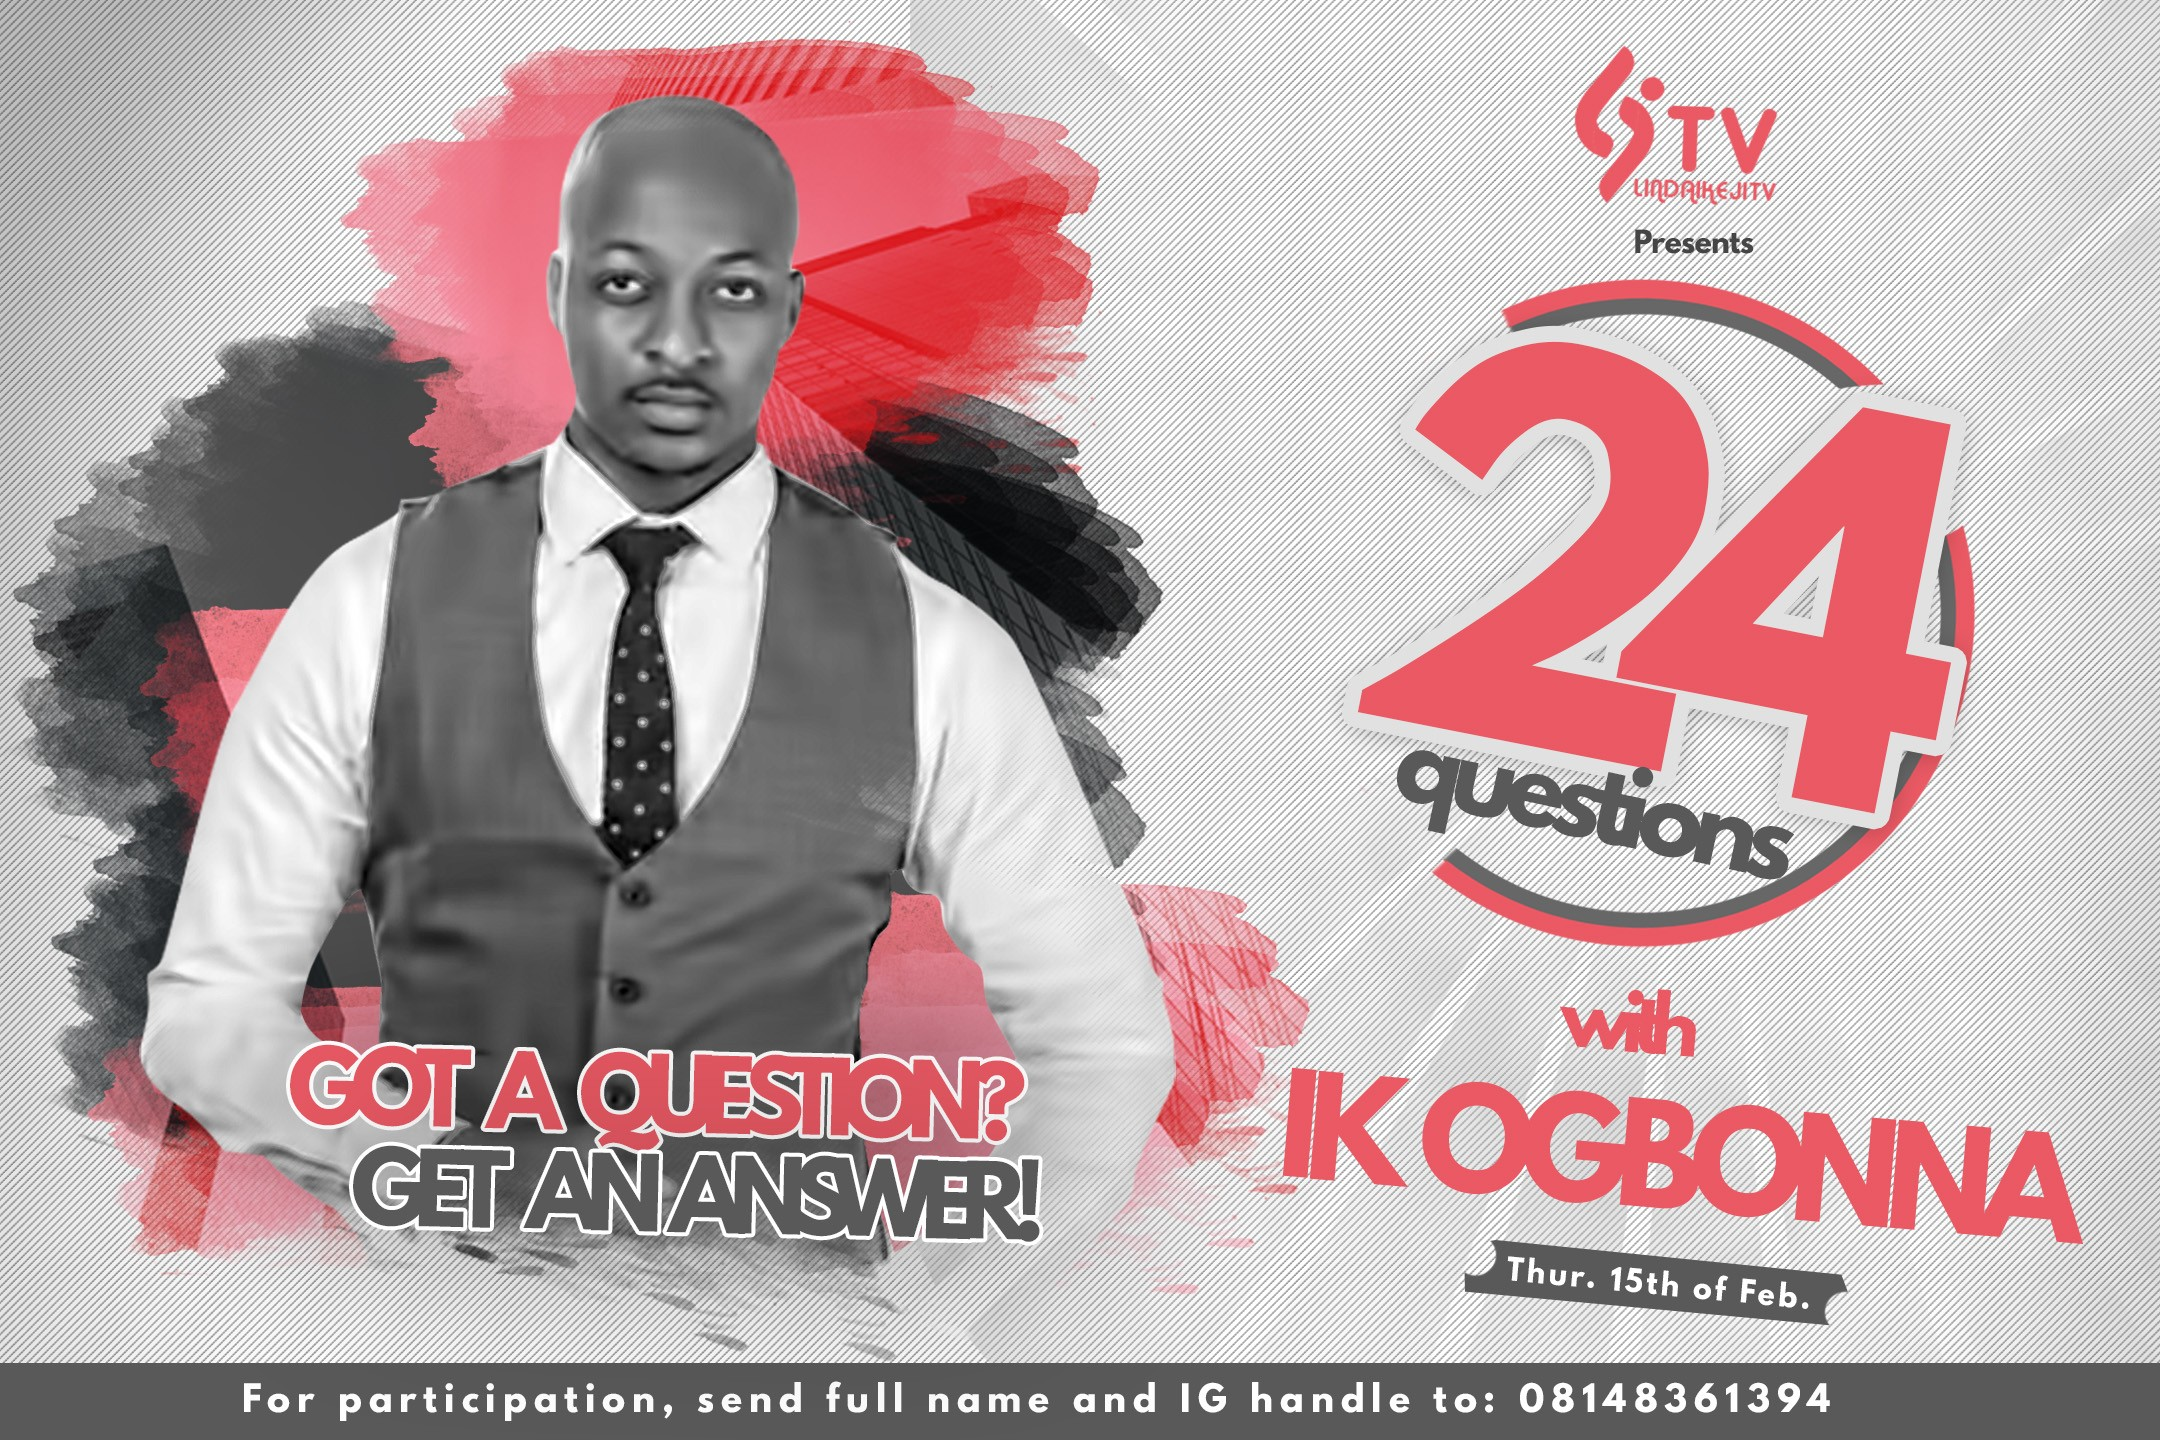 Dear fans, meet IK Ogbonna on Linda Ikeji TV's 24 Questions With...